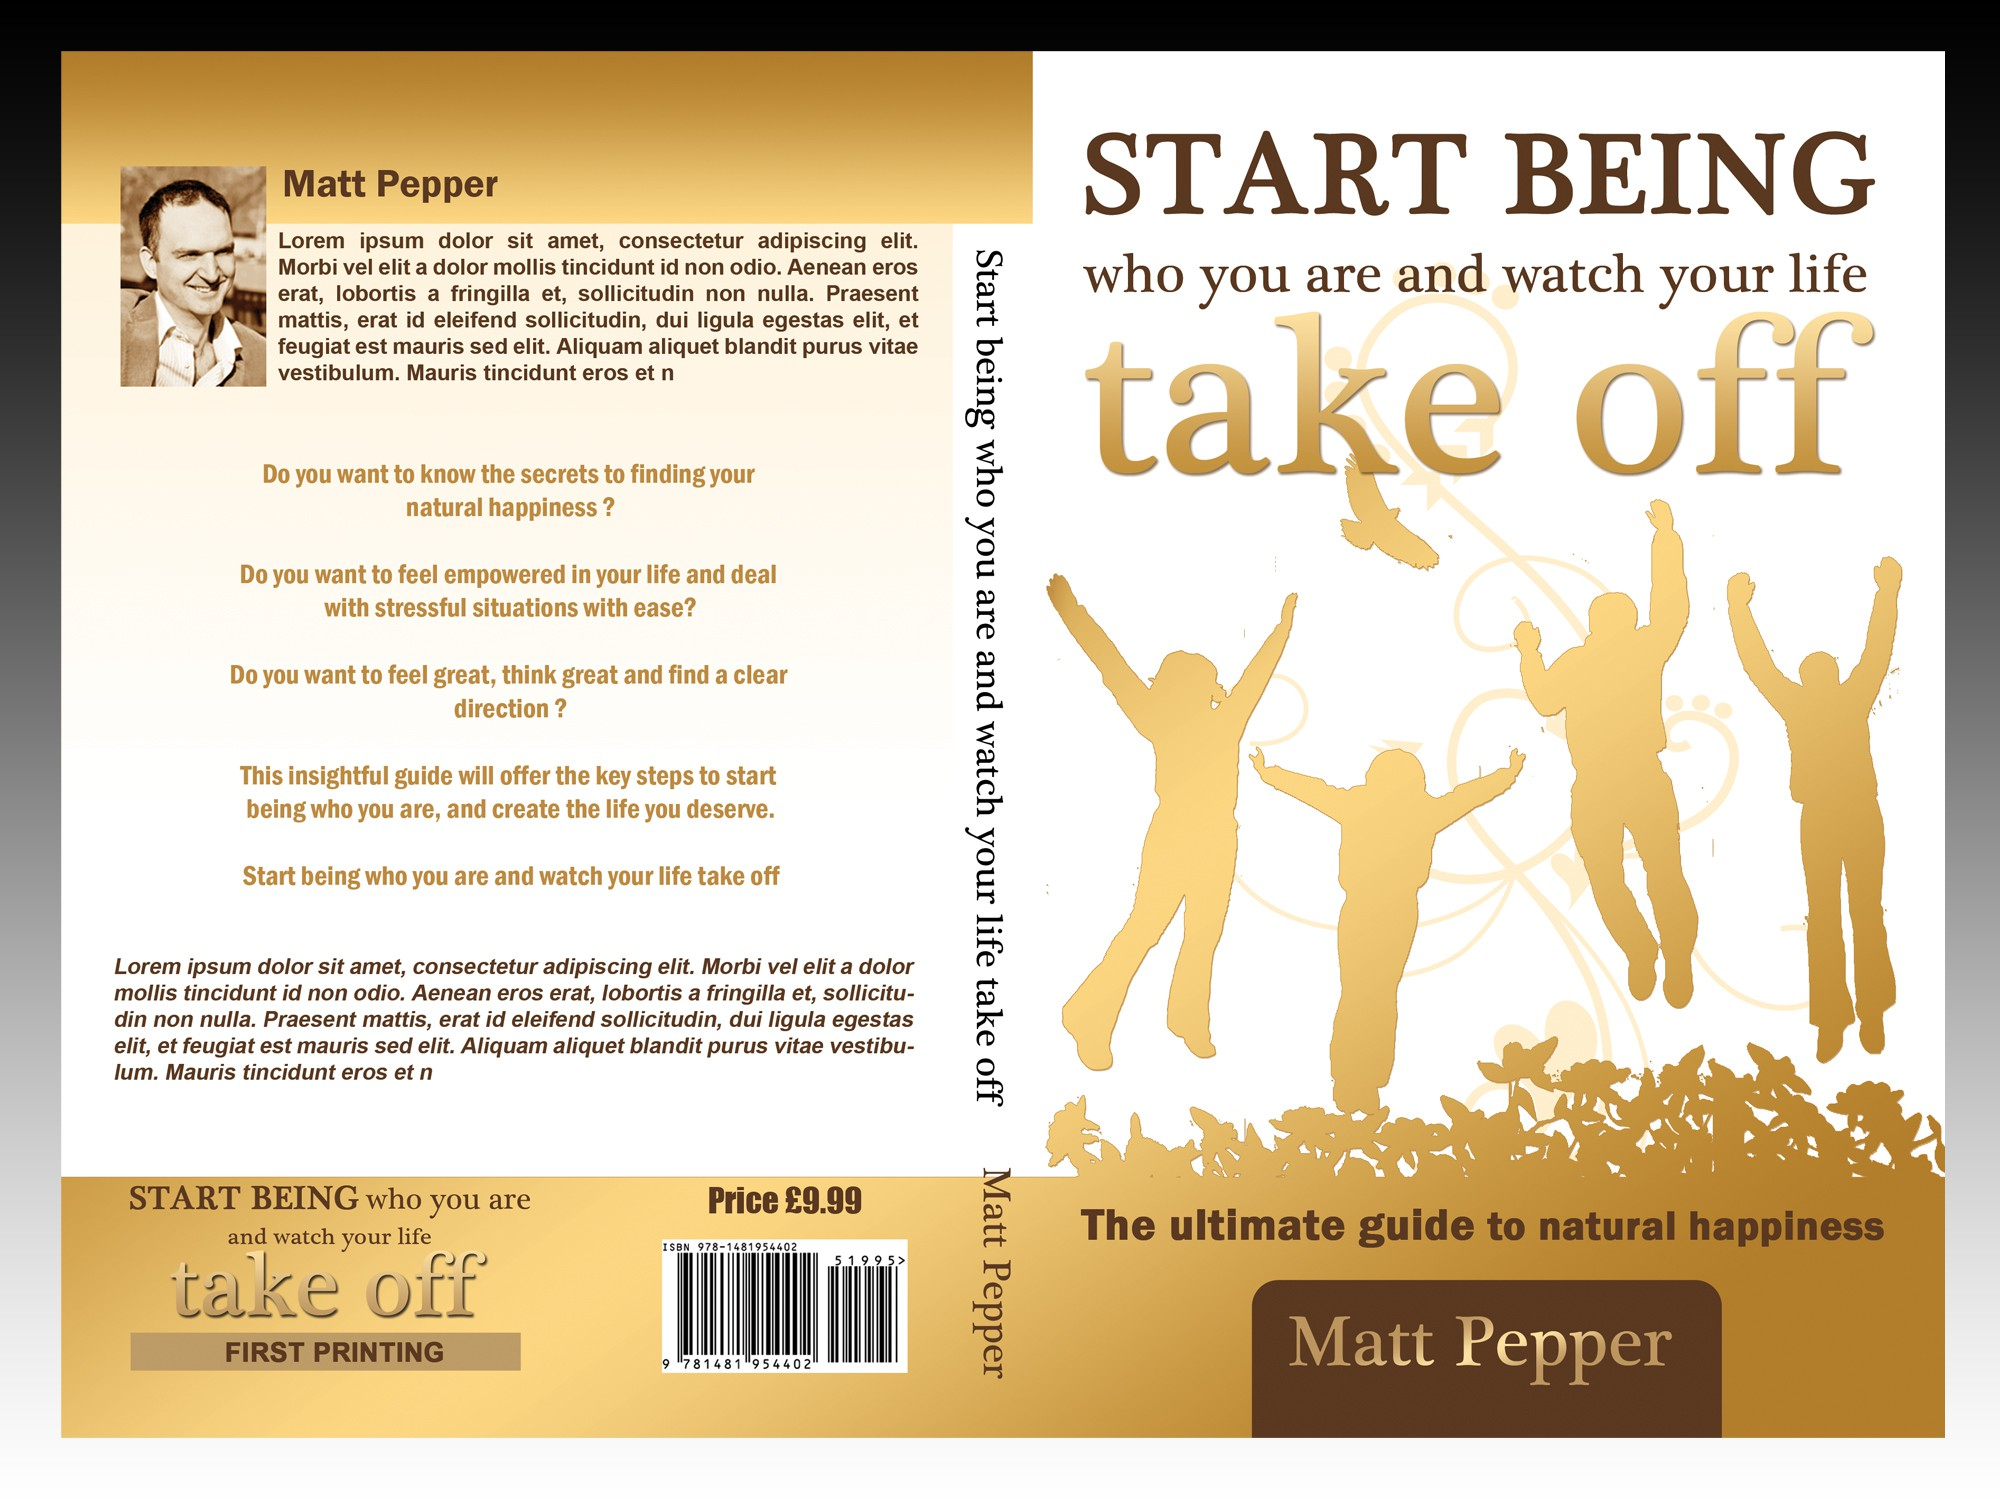 New book cover for exciting new book by Matt Pepper